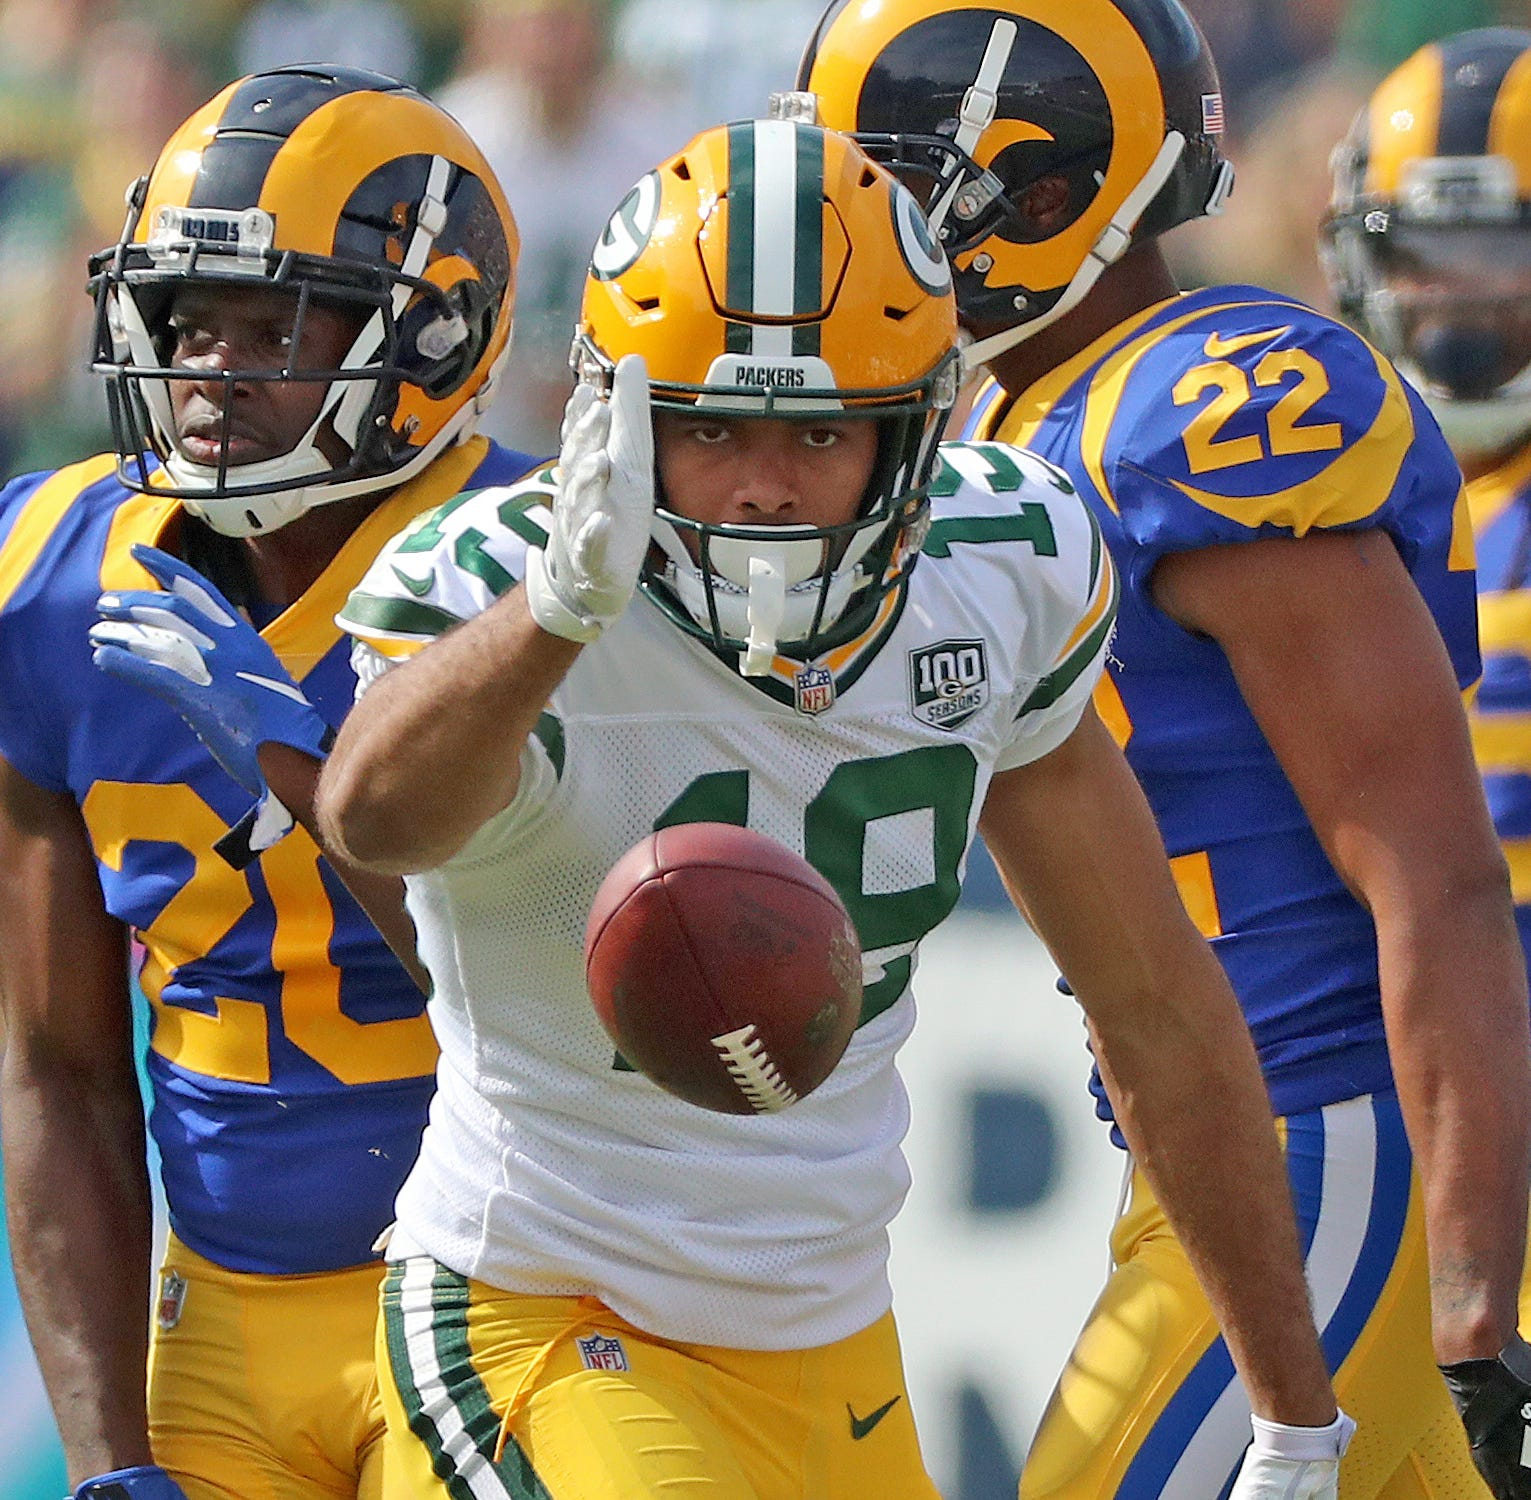 Packers at Bears preview: Predictions, 5 things to watch